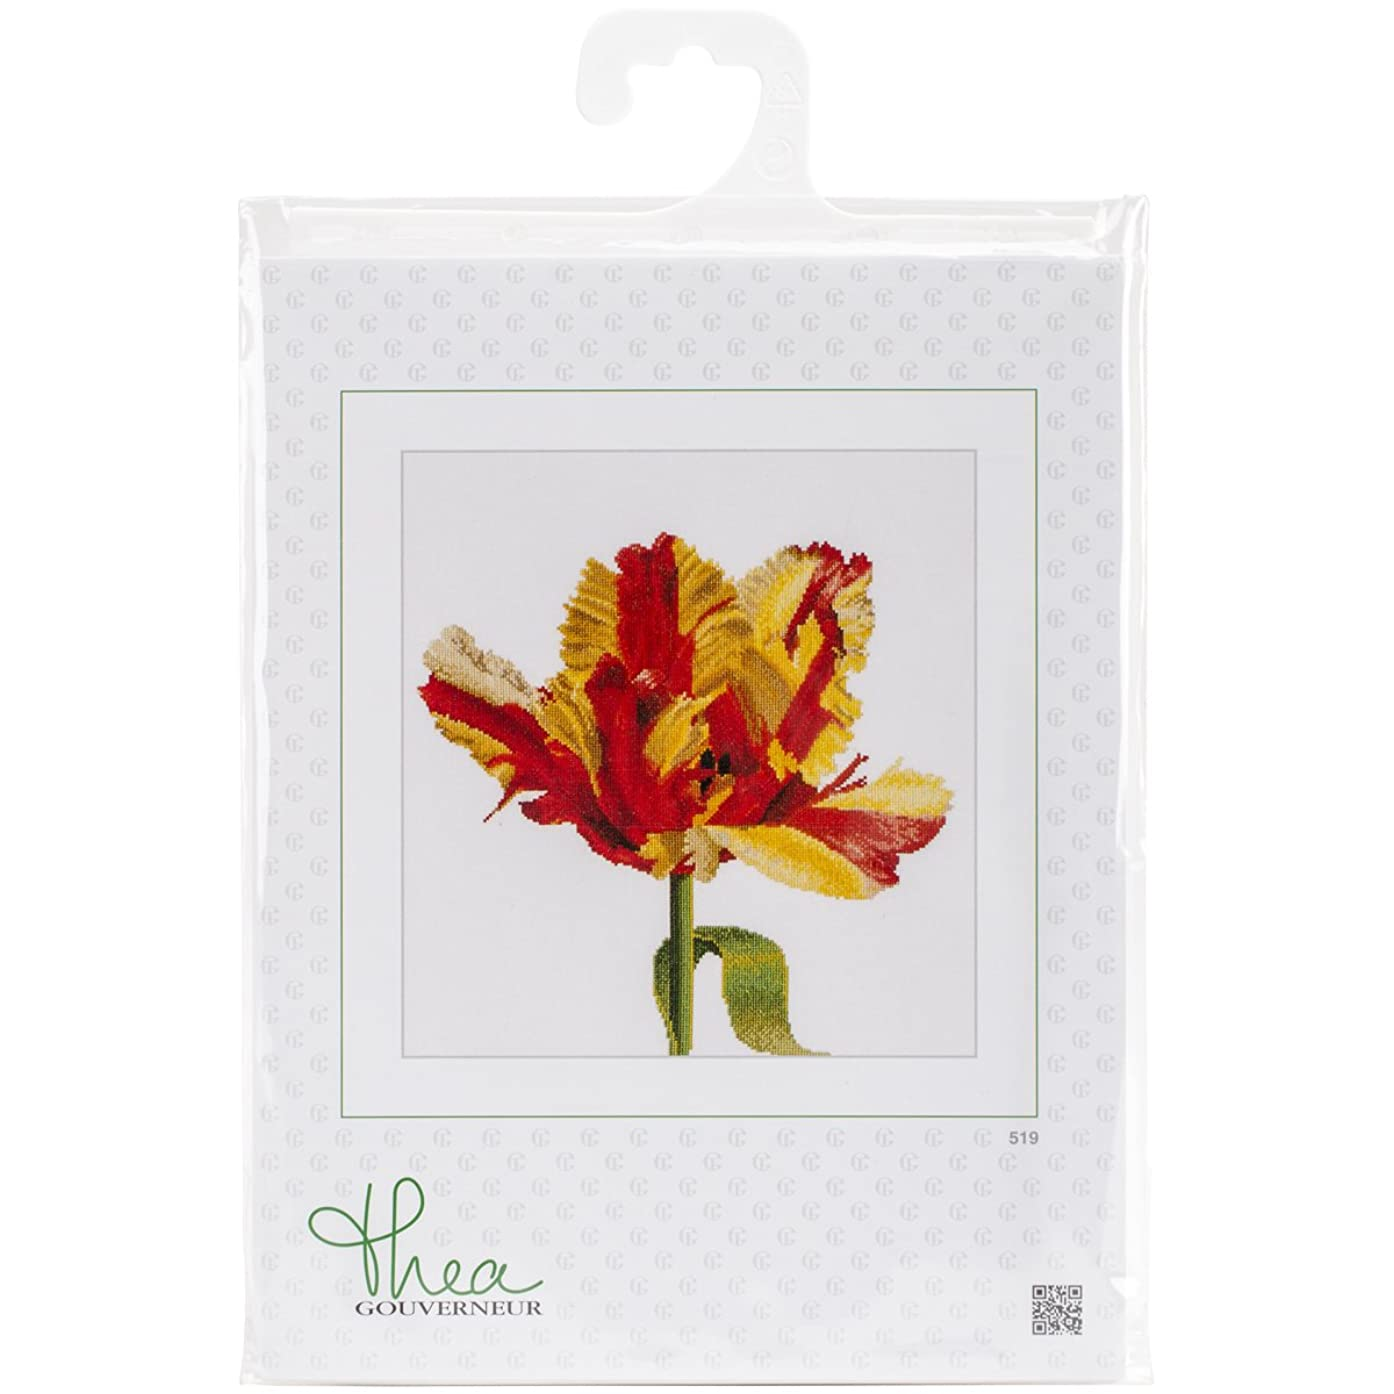 Thea Gouverneur 18 Count Red/Yellow Parrot Tulip on Aida Counted Cross Stitch Kit, 13.5 x 14.25